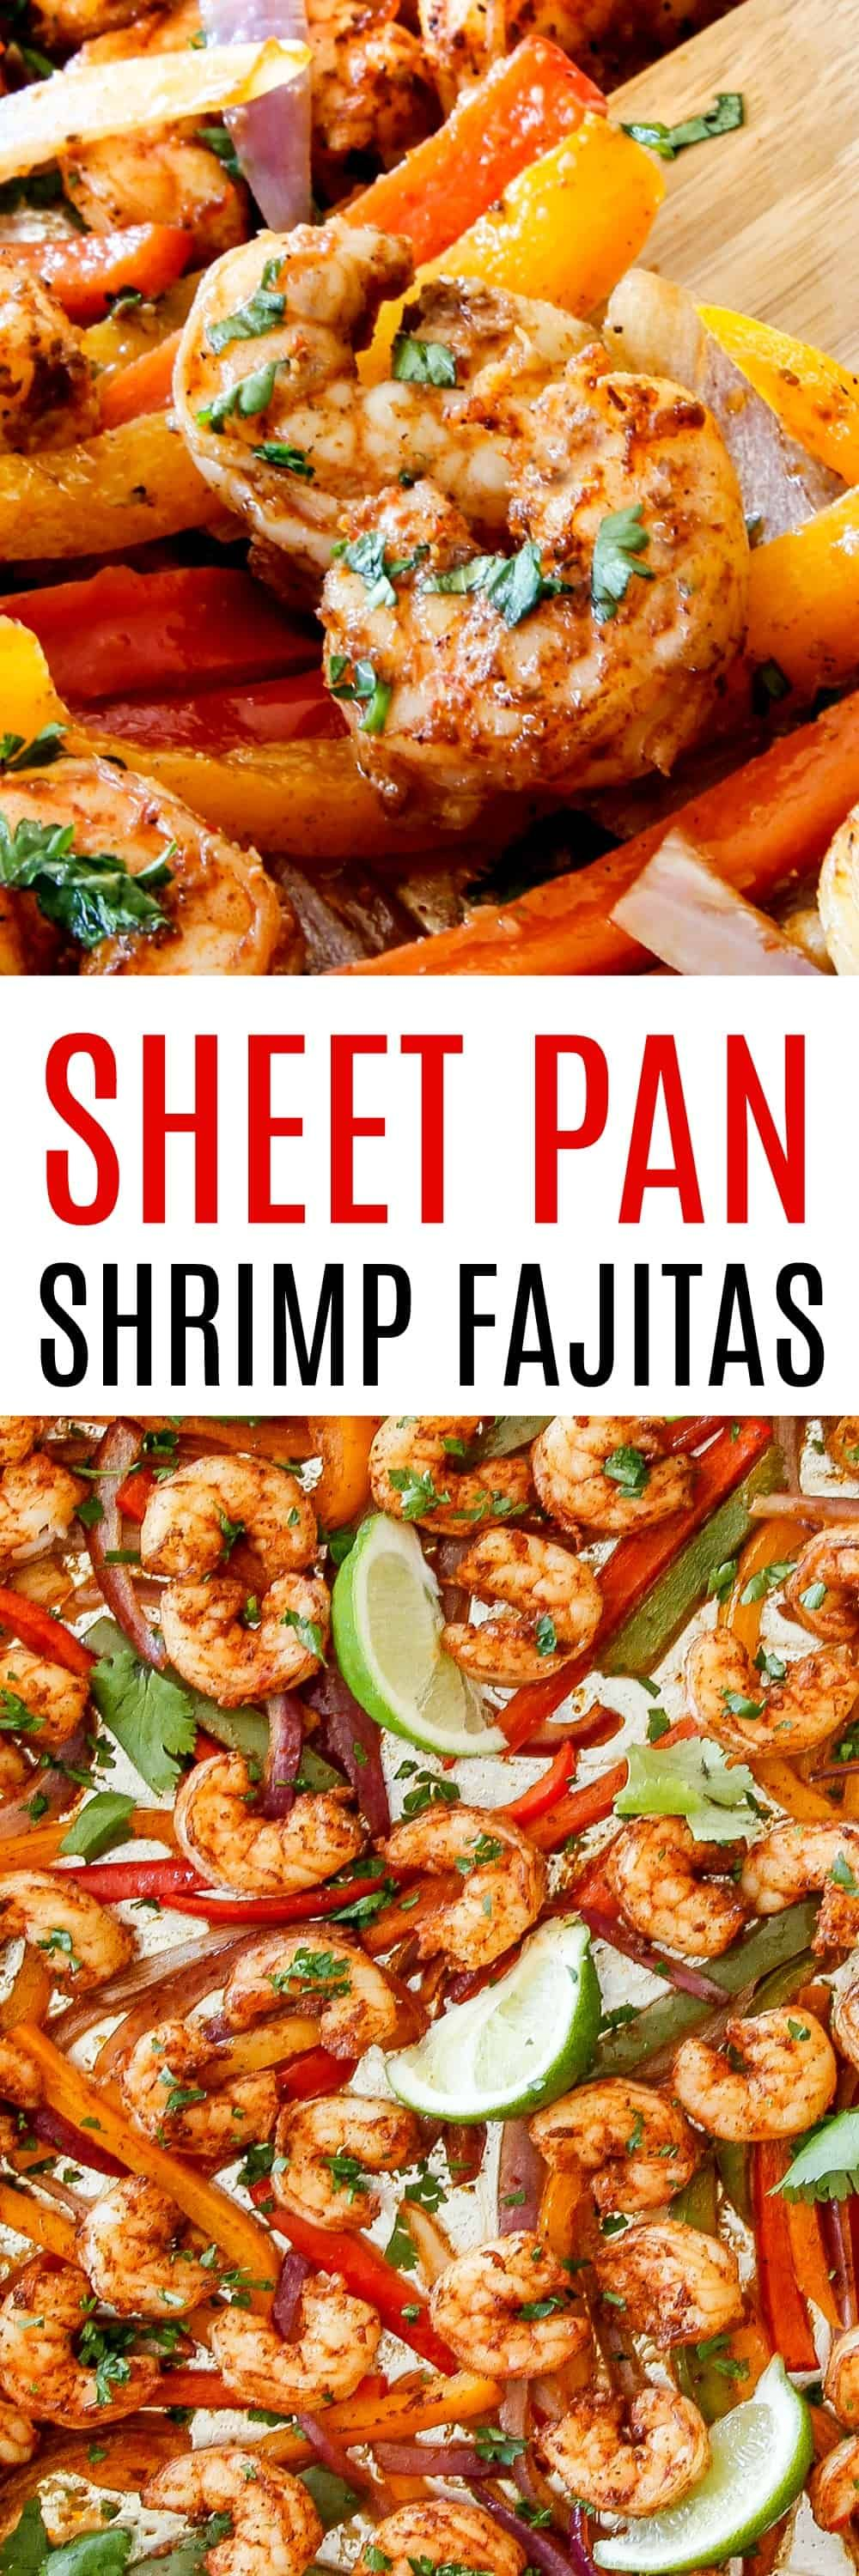 Sheet Pan Shrimp Fajitas are a quick and easy weeknight meal that tastes totally gourmet  This can be on your table in under 30 minutes